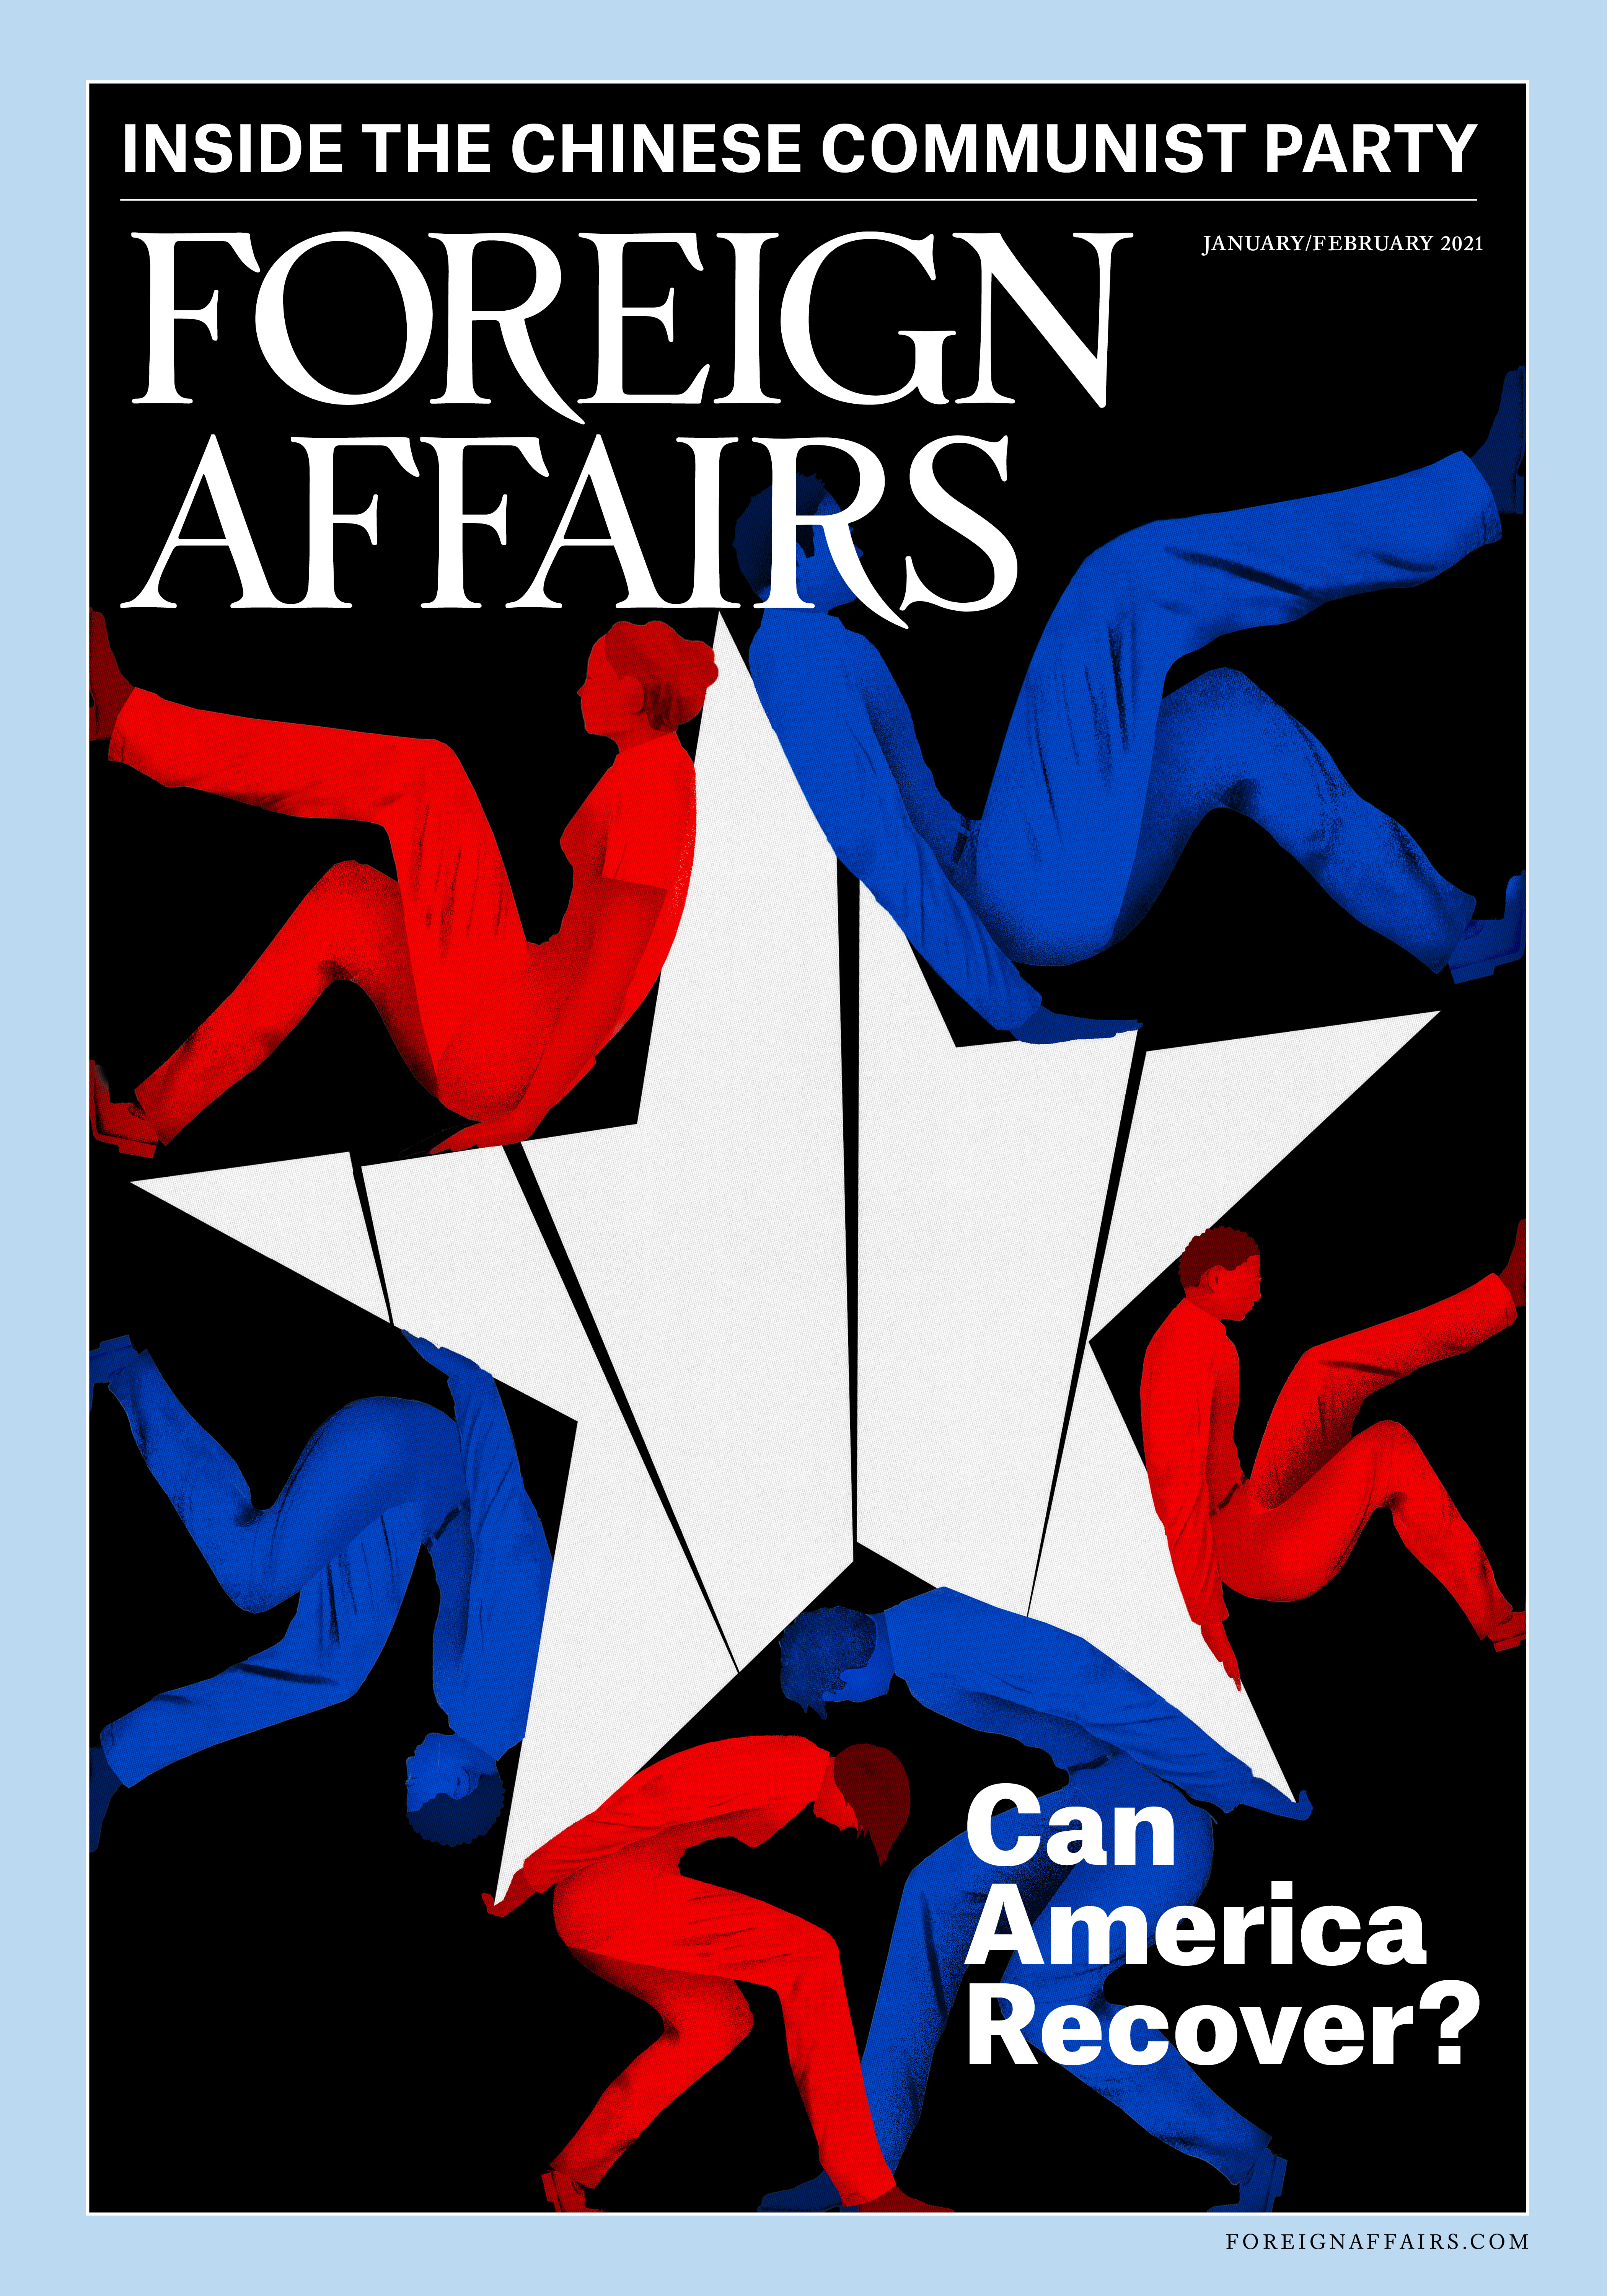 ForeignAffairs